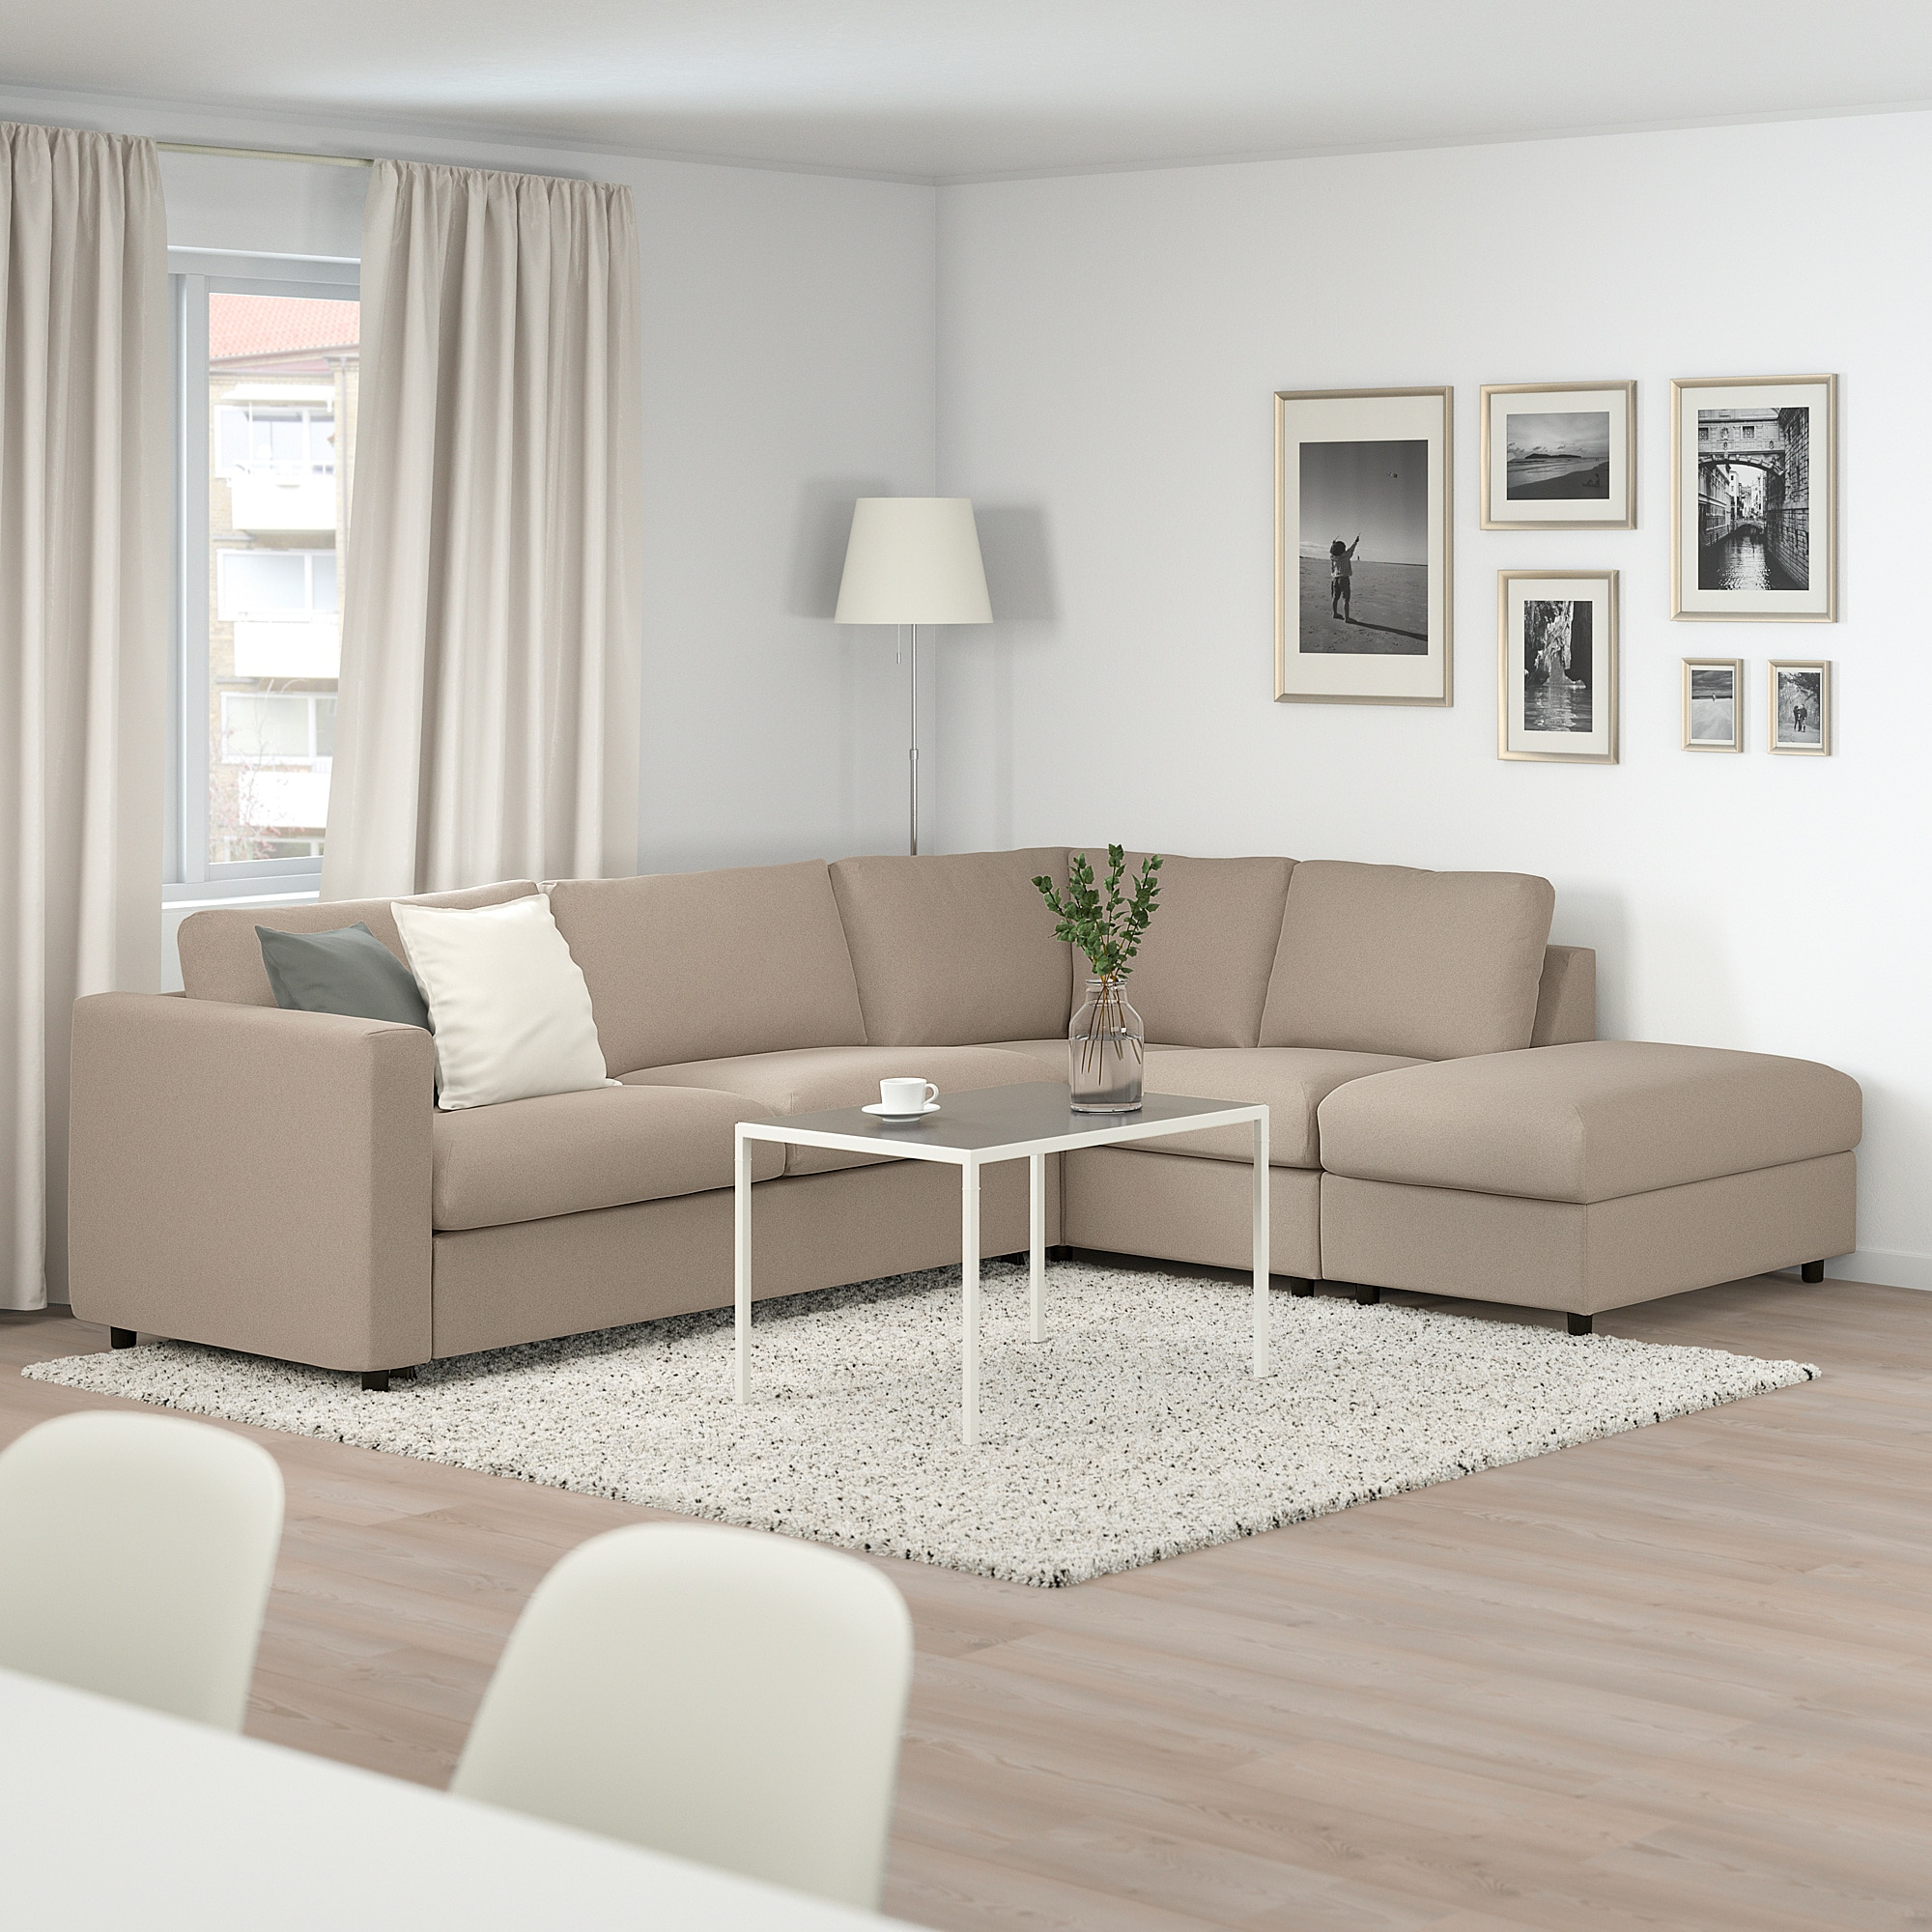 Ikea Vimle Corner Sofabed W Storage With Open End Tallmyra Beige Canape Lit Angle Canape Lit Lit En Angle